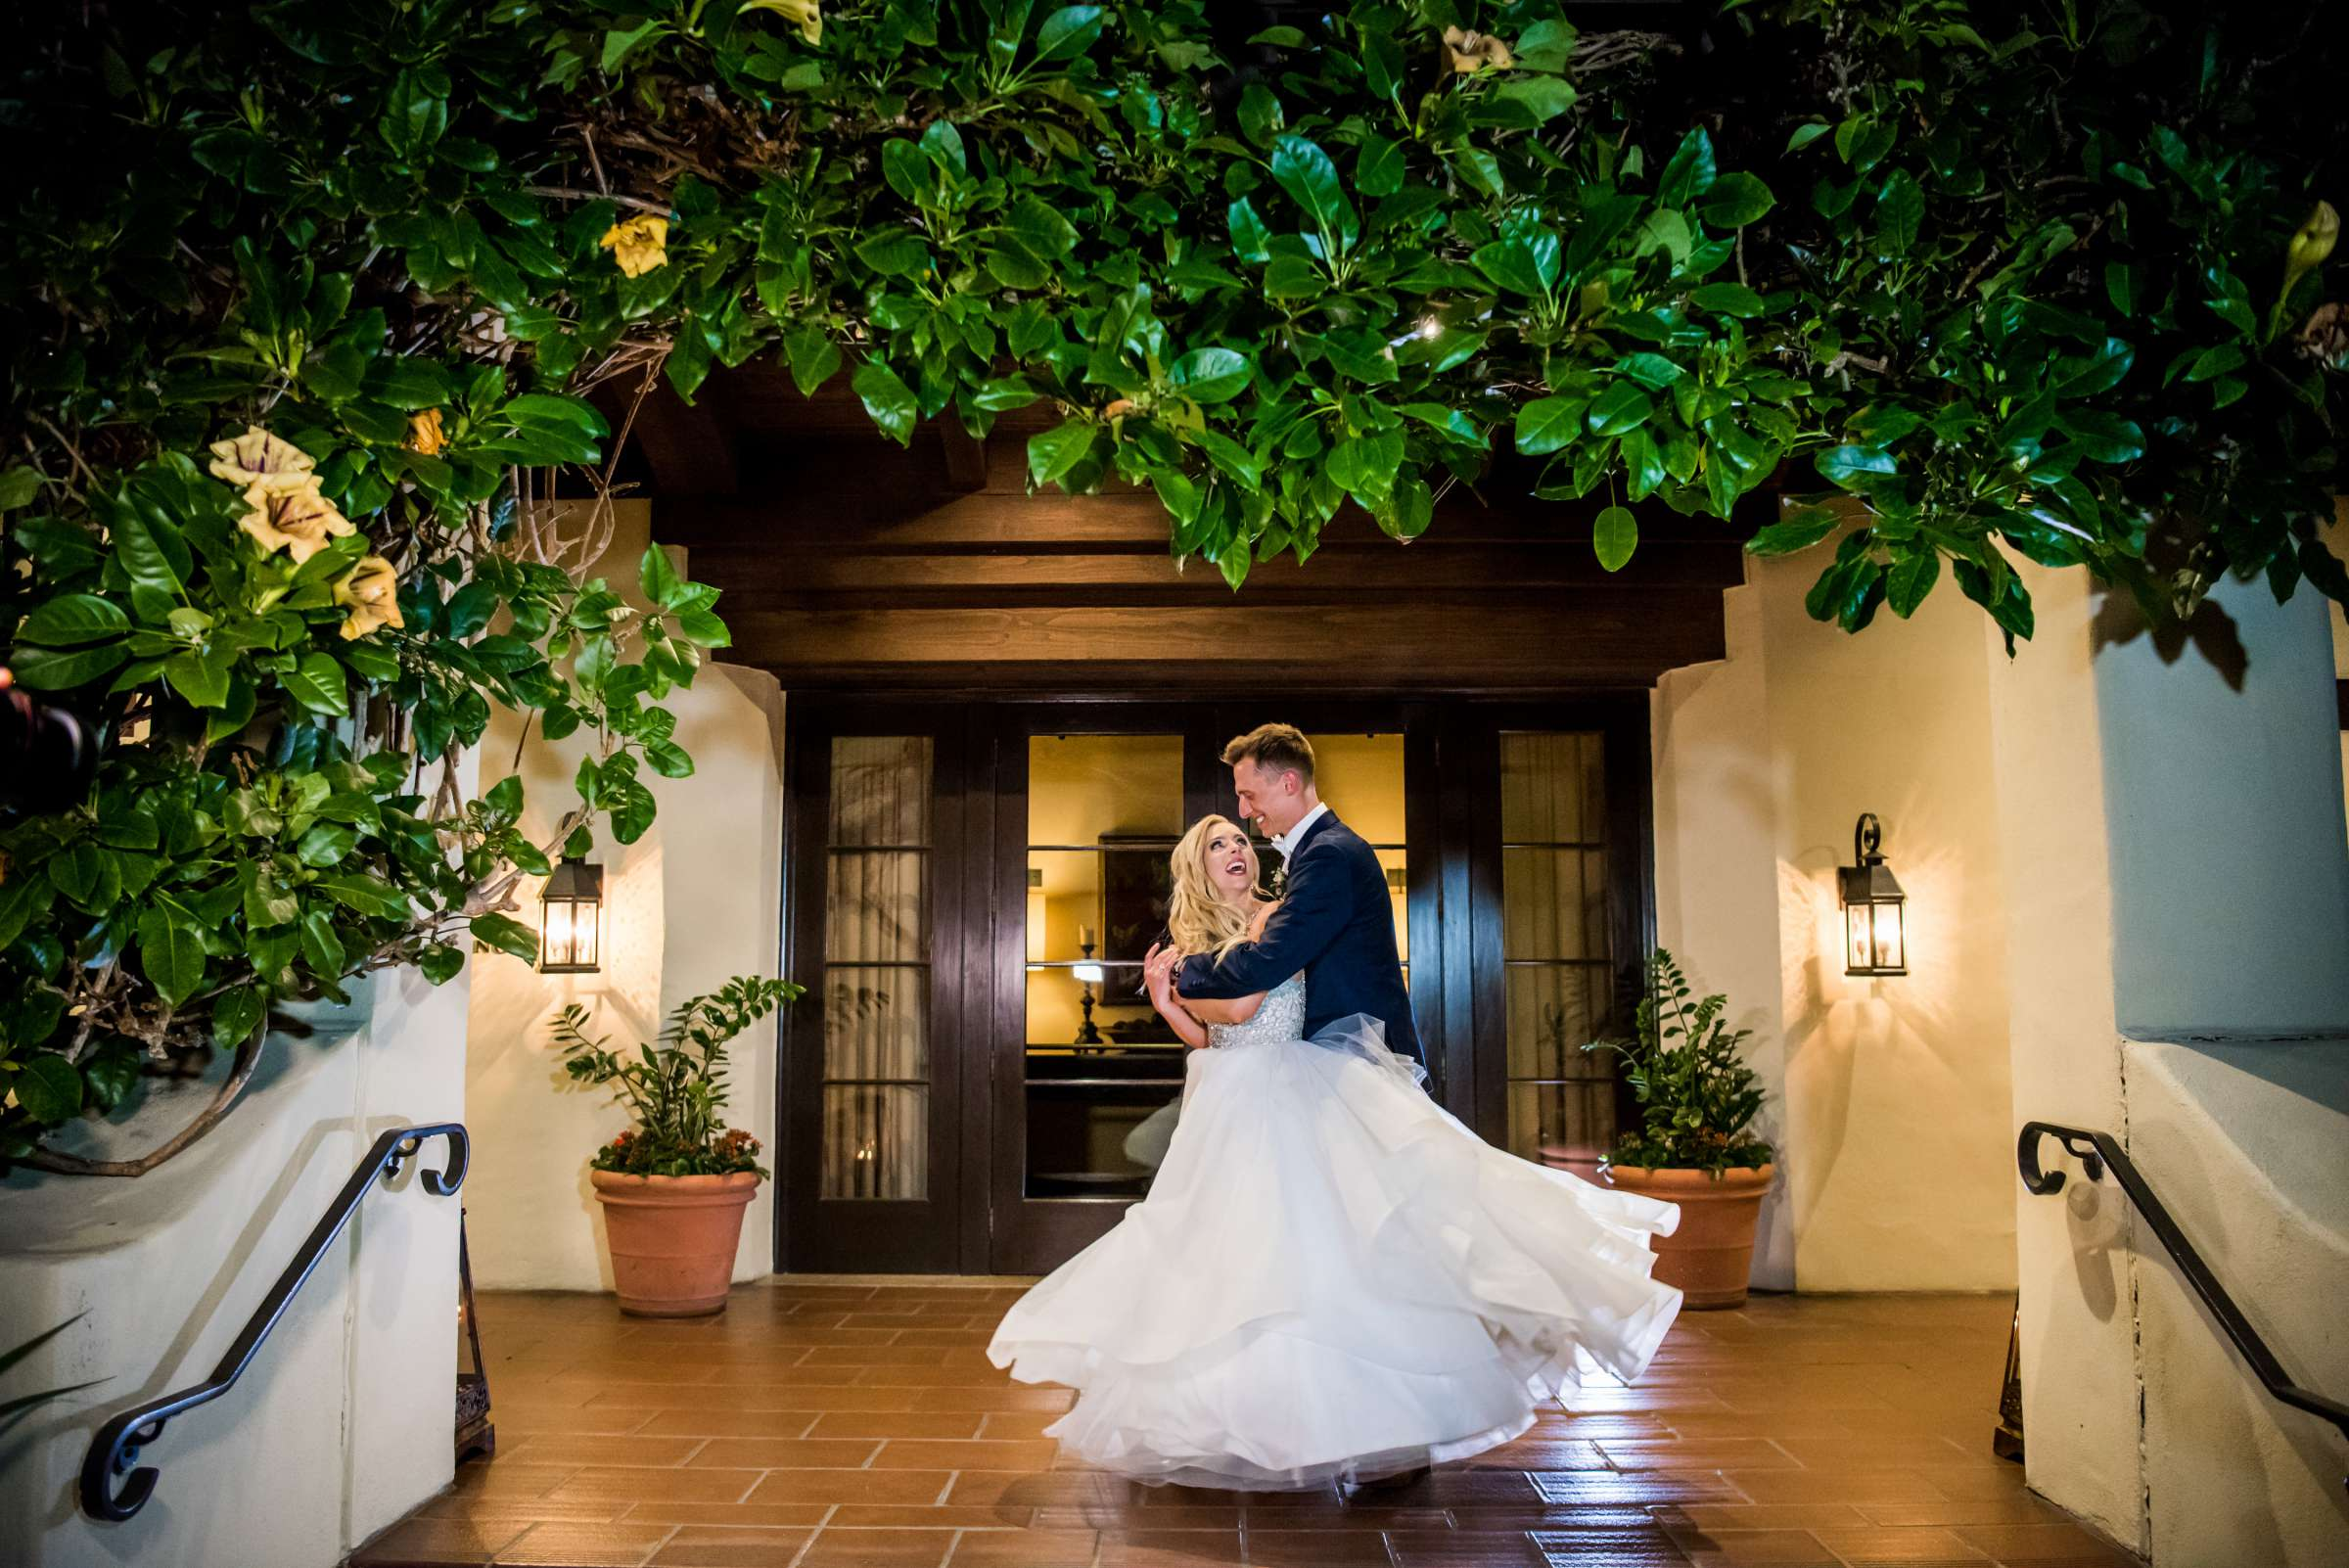 Estancia Wedding coordinated by Details Darling, Kaileigh and Richard Wedding Photo #4 by True Photography